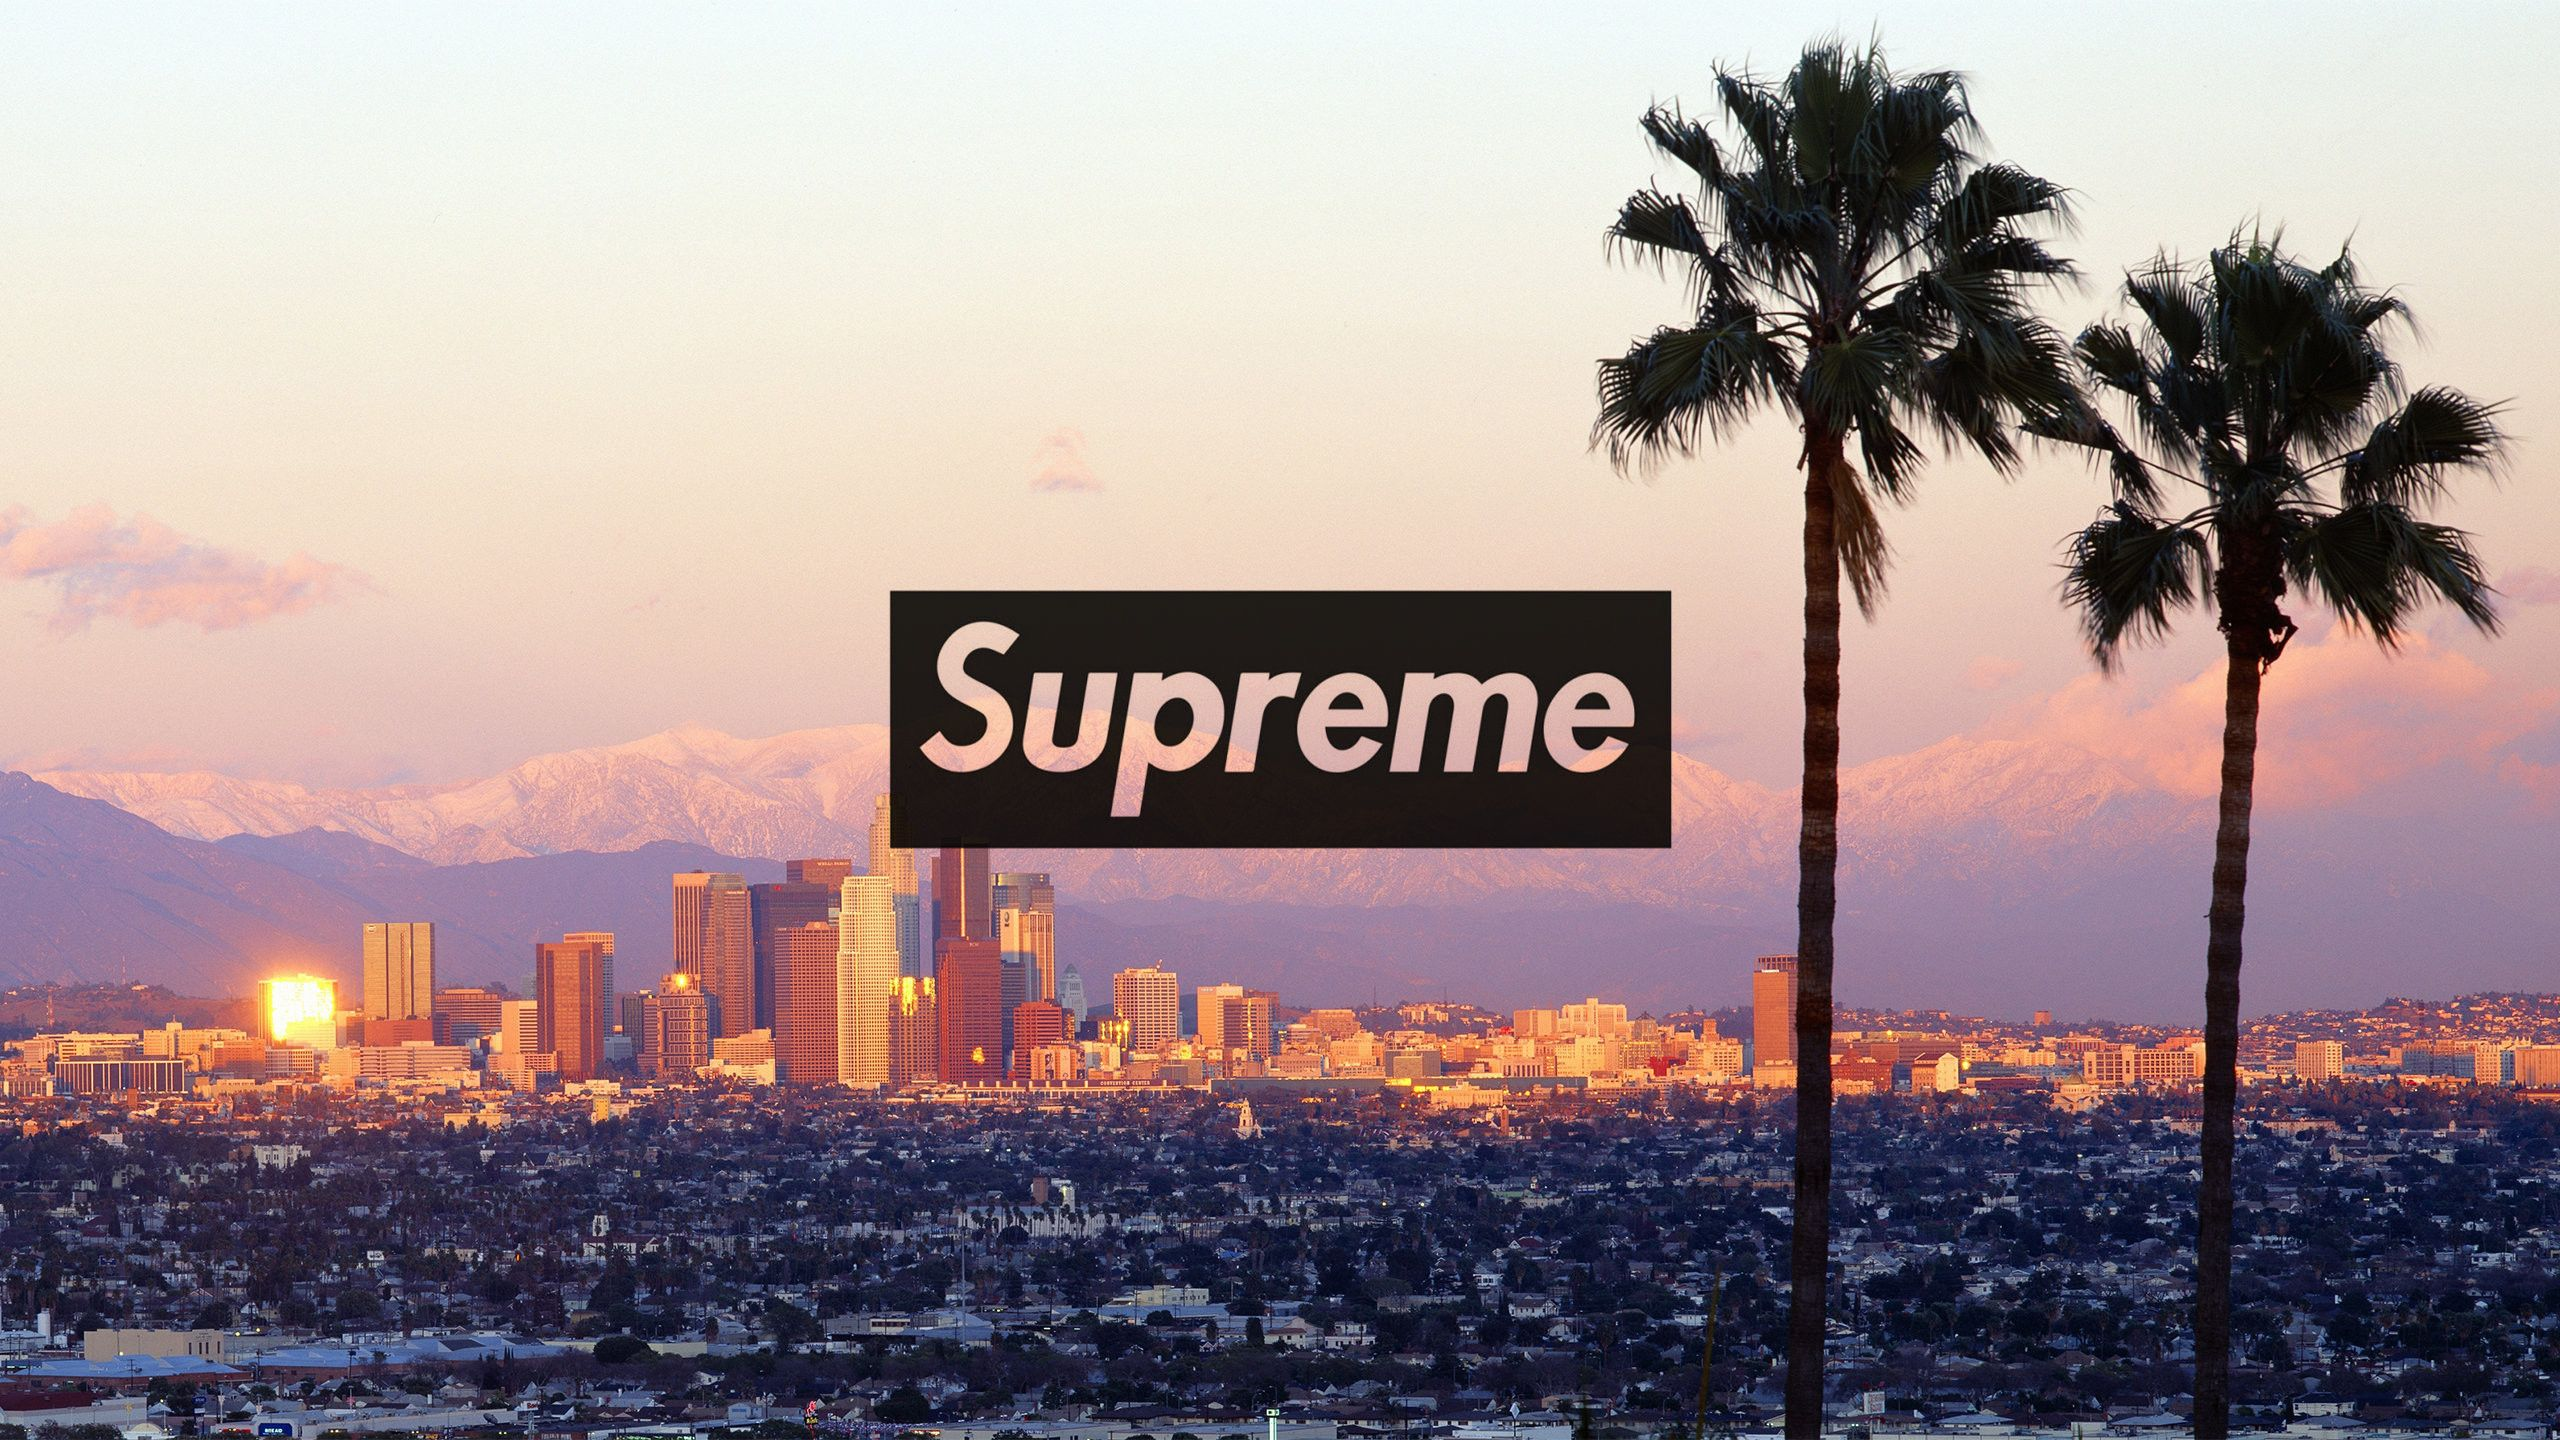 2560x1440 Download The Los Angeles Supreme Wallpaper Below For Your Mobile Dev Computer Wallpaper Desktop Wallpapers Supreme Wallpaper Supreme Iphone Wallpaper